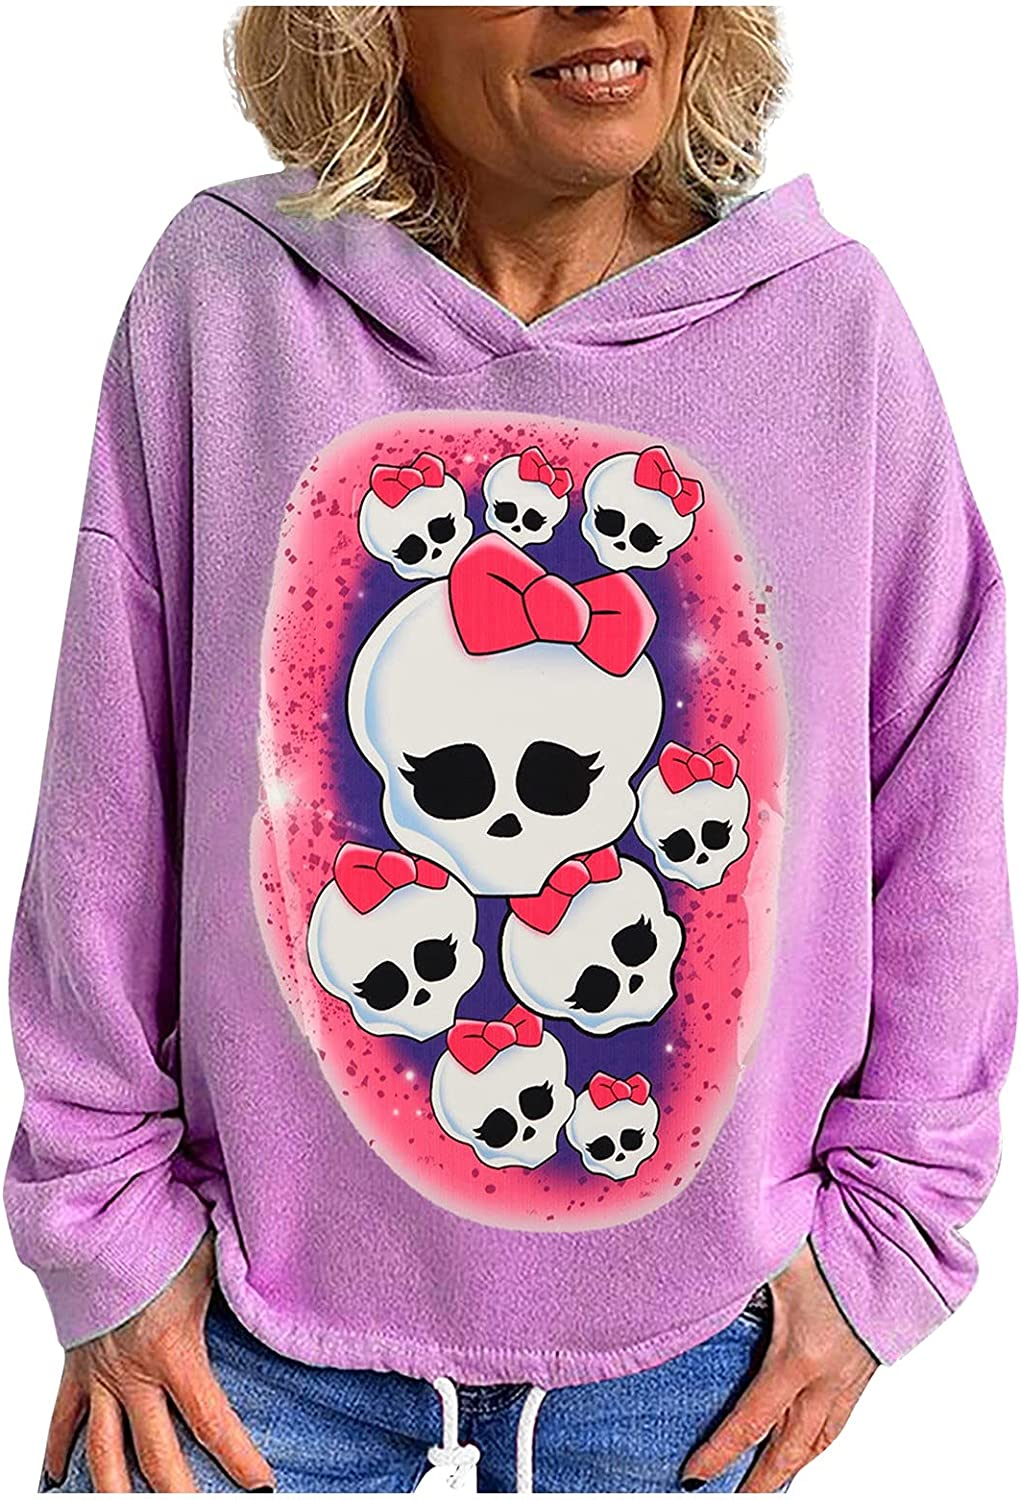 Women's Hooded Sweatshirt Drawstring At Hem Colorful Print Long Sleeve Blouses Loose Casual Pullover Lightweight Tops